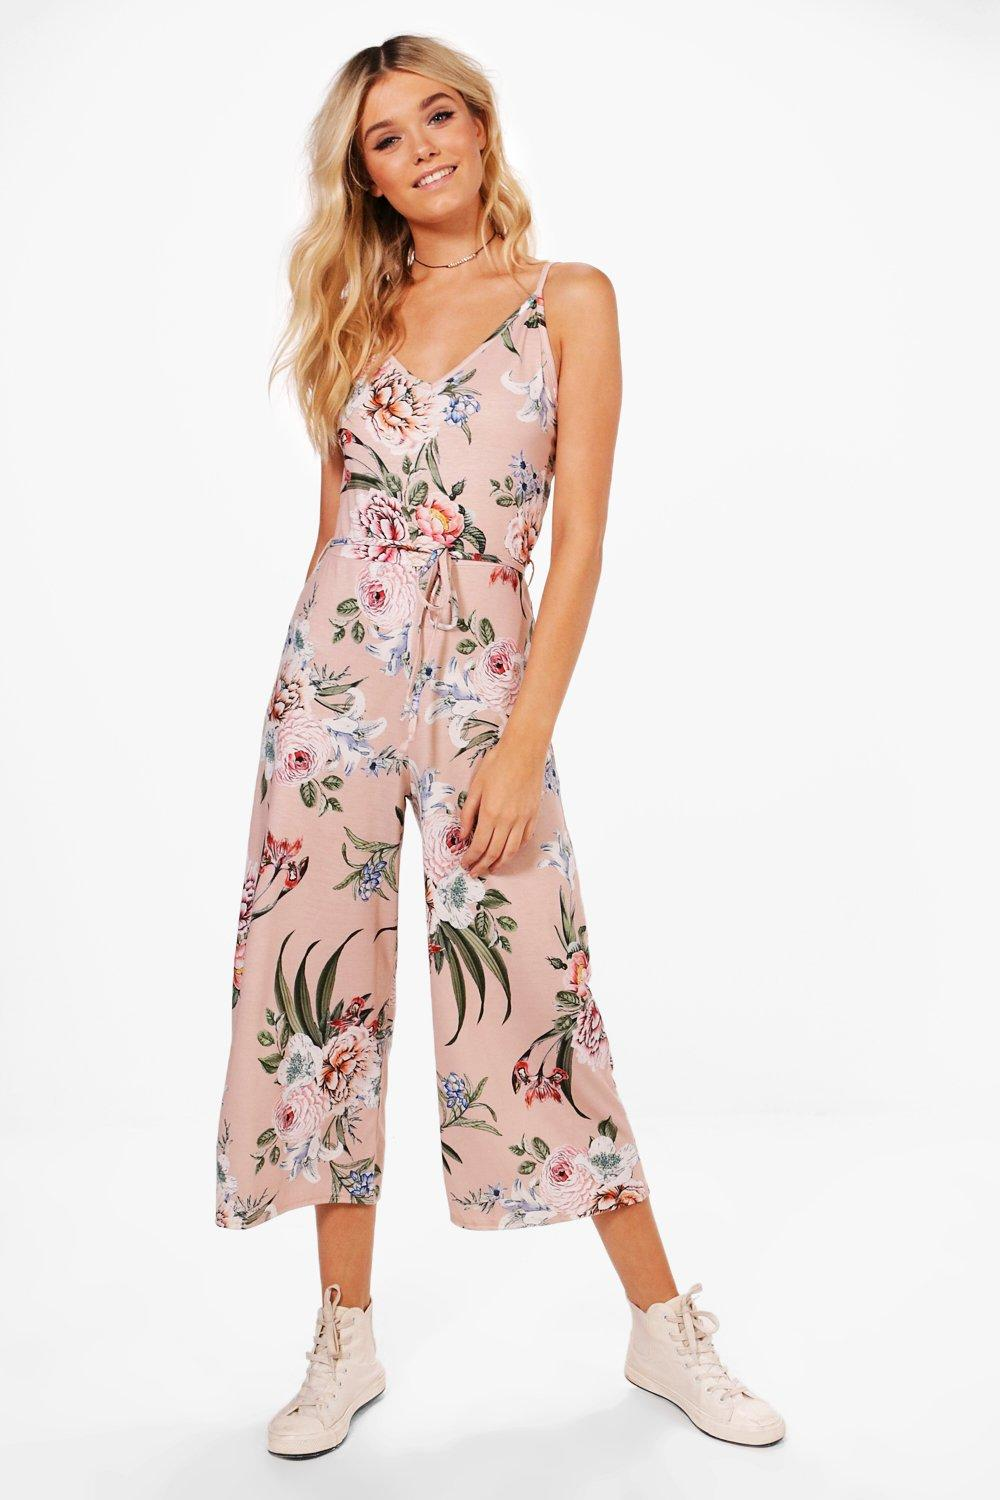 8581eb90277 Hetty Floral Print Culotte Jumpsuit. Hover to zoom